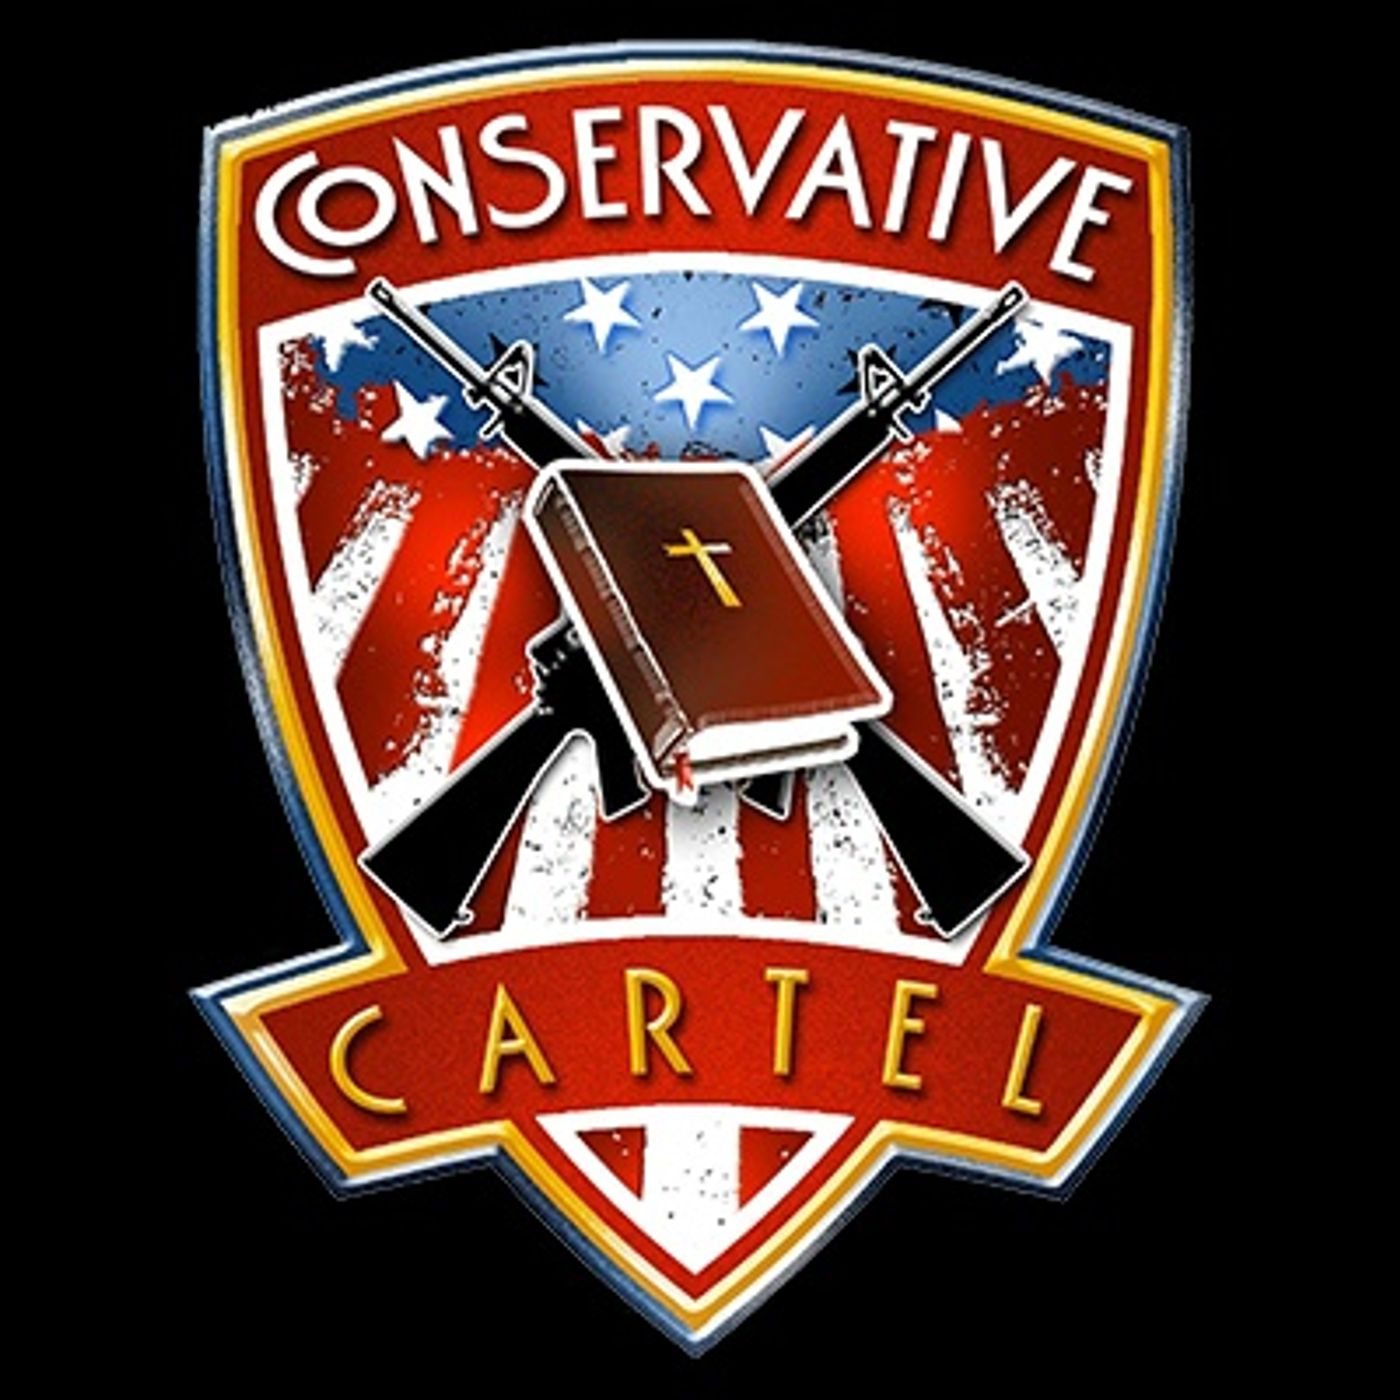 The Conservative Cartel with Matt Locke and Ron Phillips